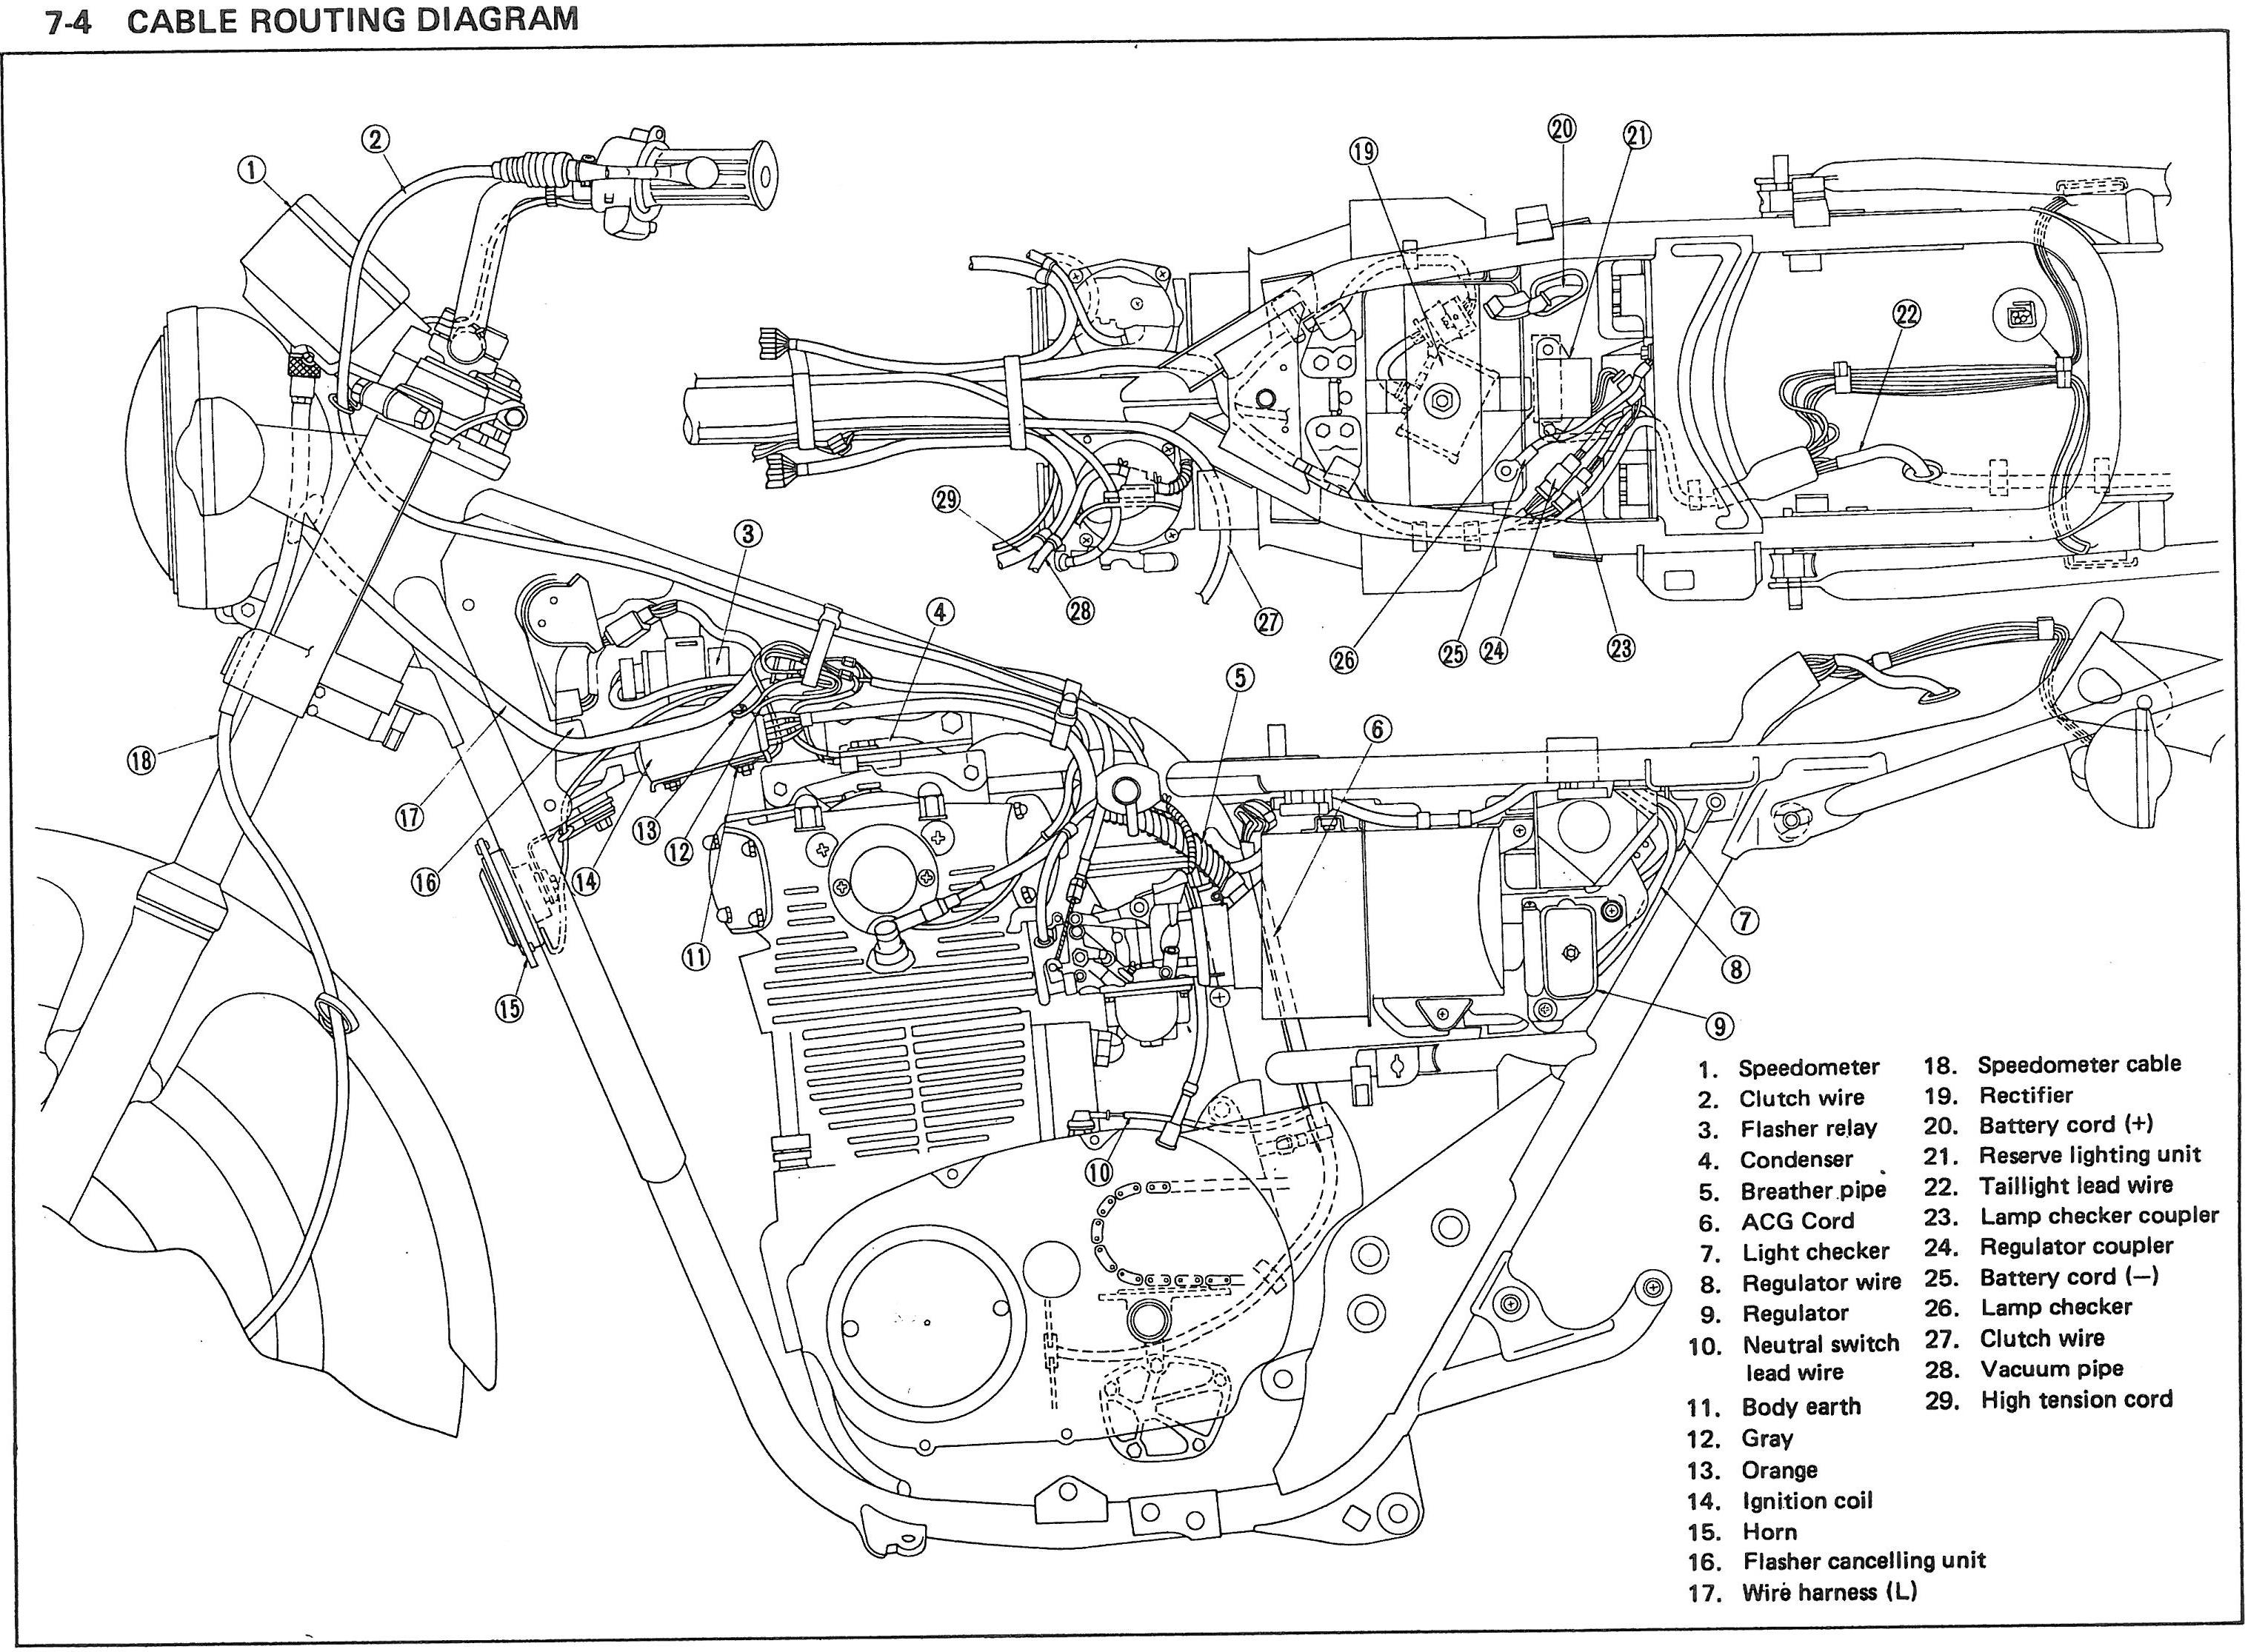 Cafe Racer Wire Diagram Explore Wiring On The Net Honda Gl500 Elec Thexscafe Cx500 Motorcycles